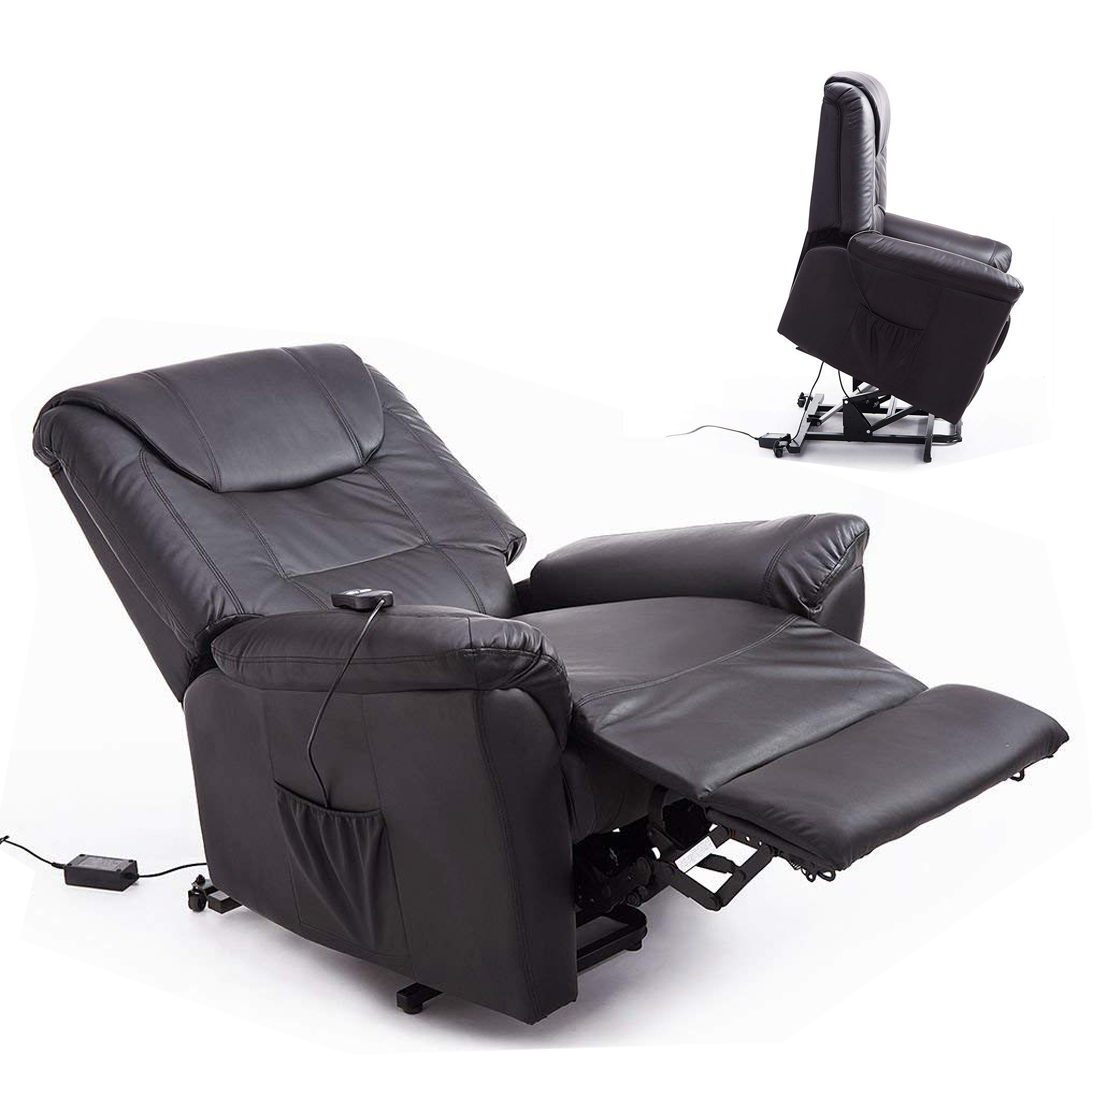 Lift Assist Chair Details About Electric Power Lift Chair Assist Sofa Armchair Recliner Pu Leather Padded R C